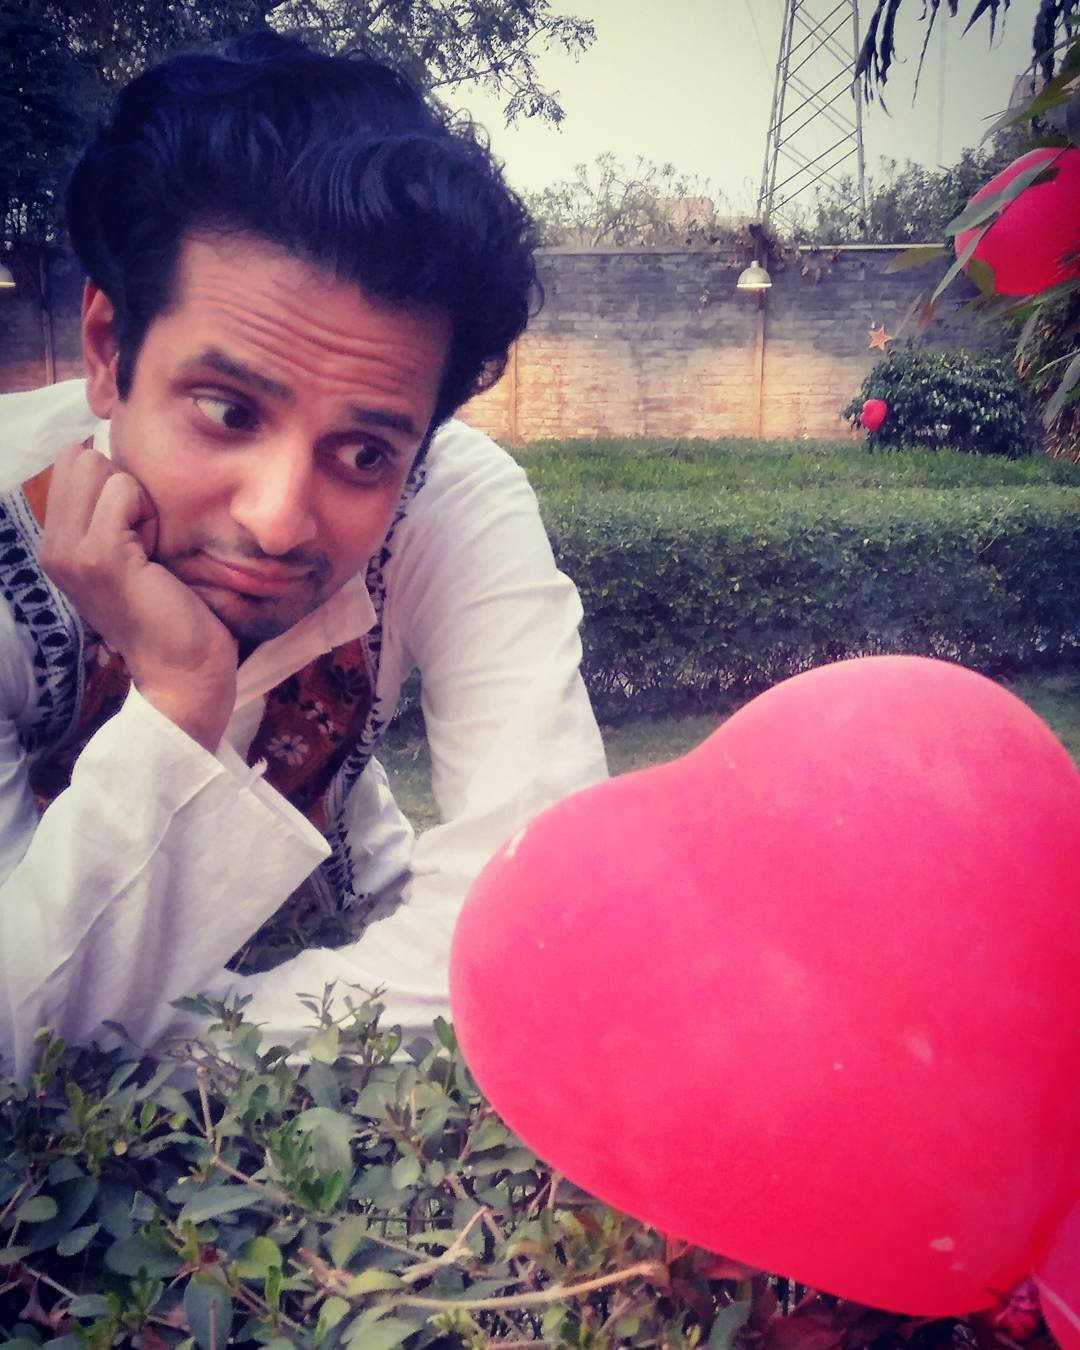 Ojas Rawal,  valentines2017, single, singlelife, valentines, happyvalentinesday, sigh, comiclife, actorslife, balloons, love, heart, actors, girlfriend, romantic, helplessromantic, balloon, pyaar, actor, hearts, bae, valentine, relationship, lovequotes, waiting, crush, iloveu, gujarati, gujju, luv, unrequitedlove